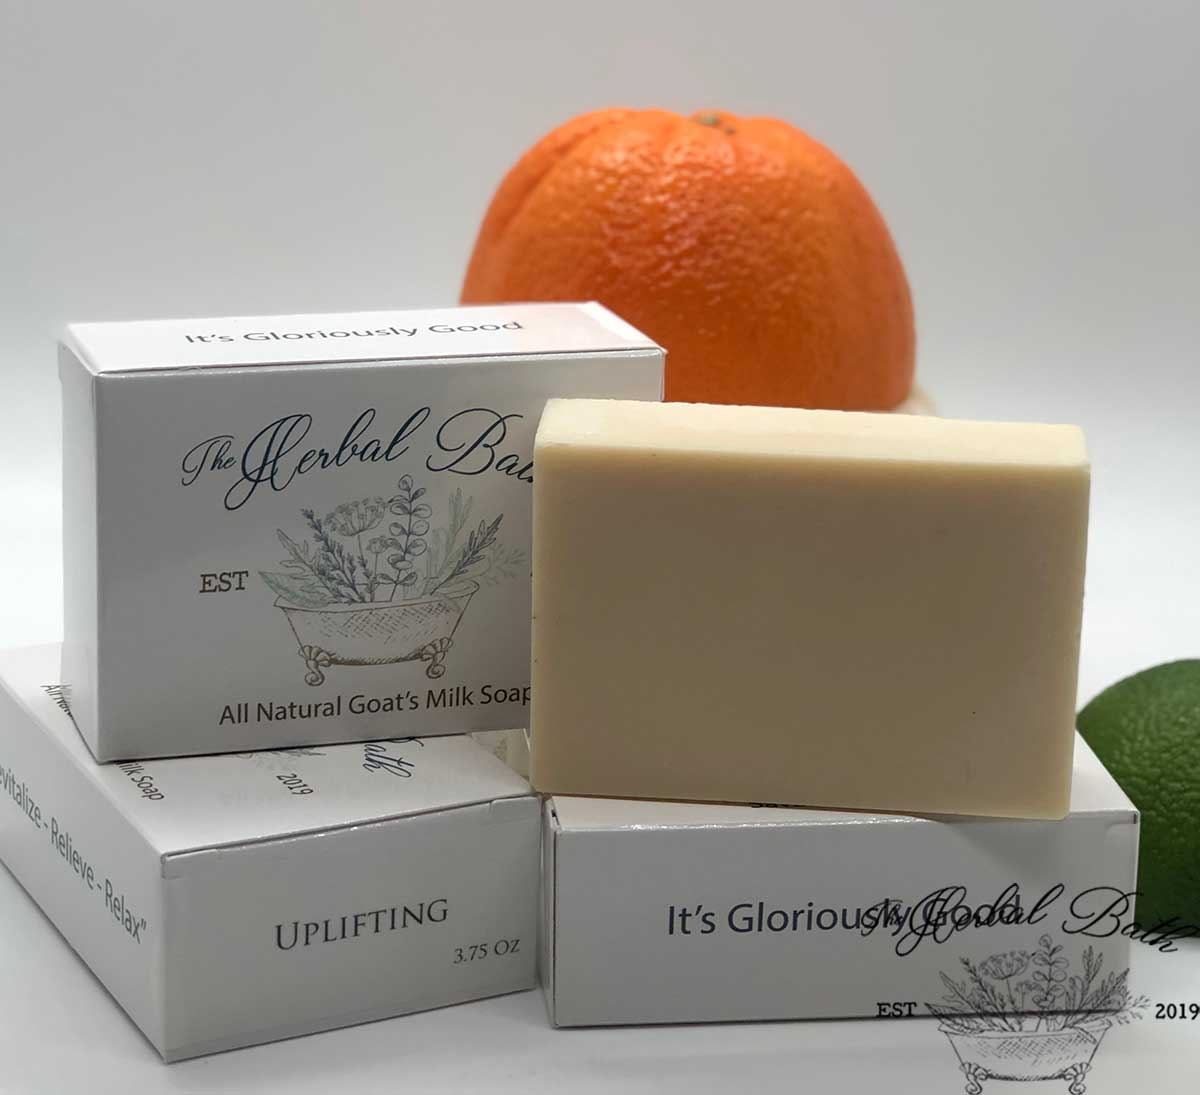 Uplifting Signature Blend-Goat's milk soap